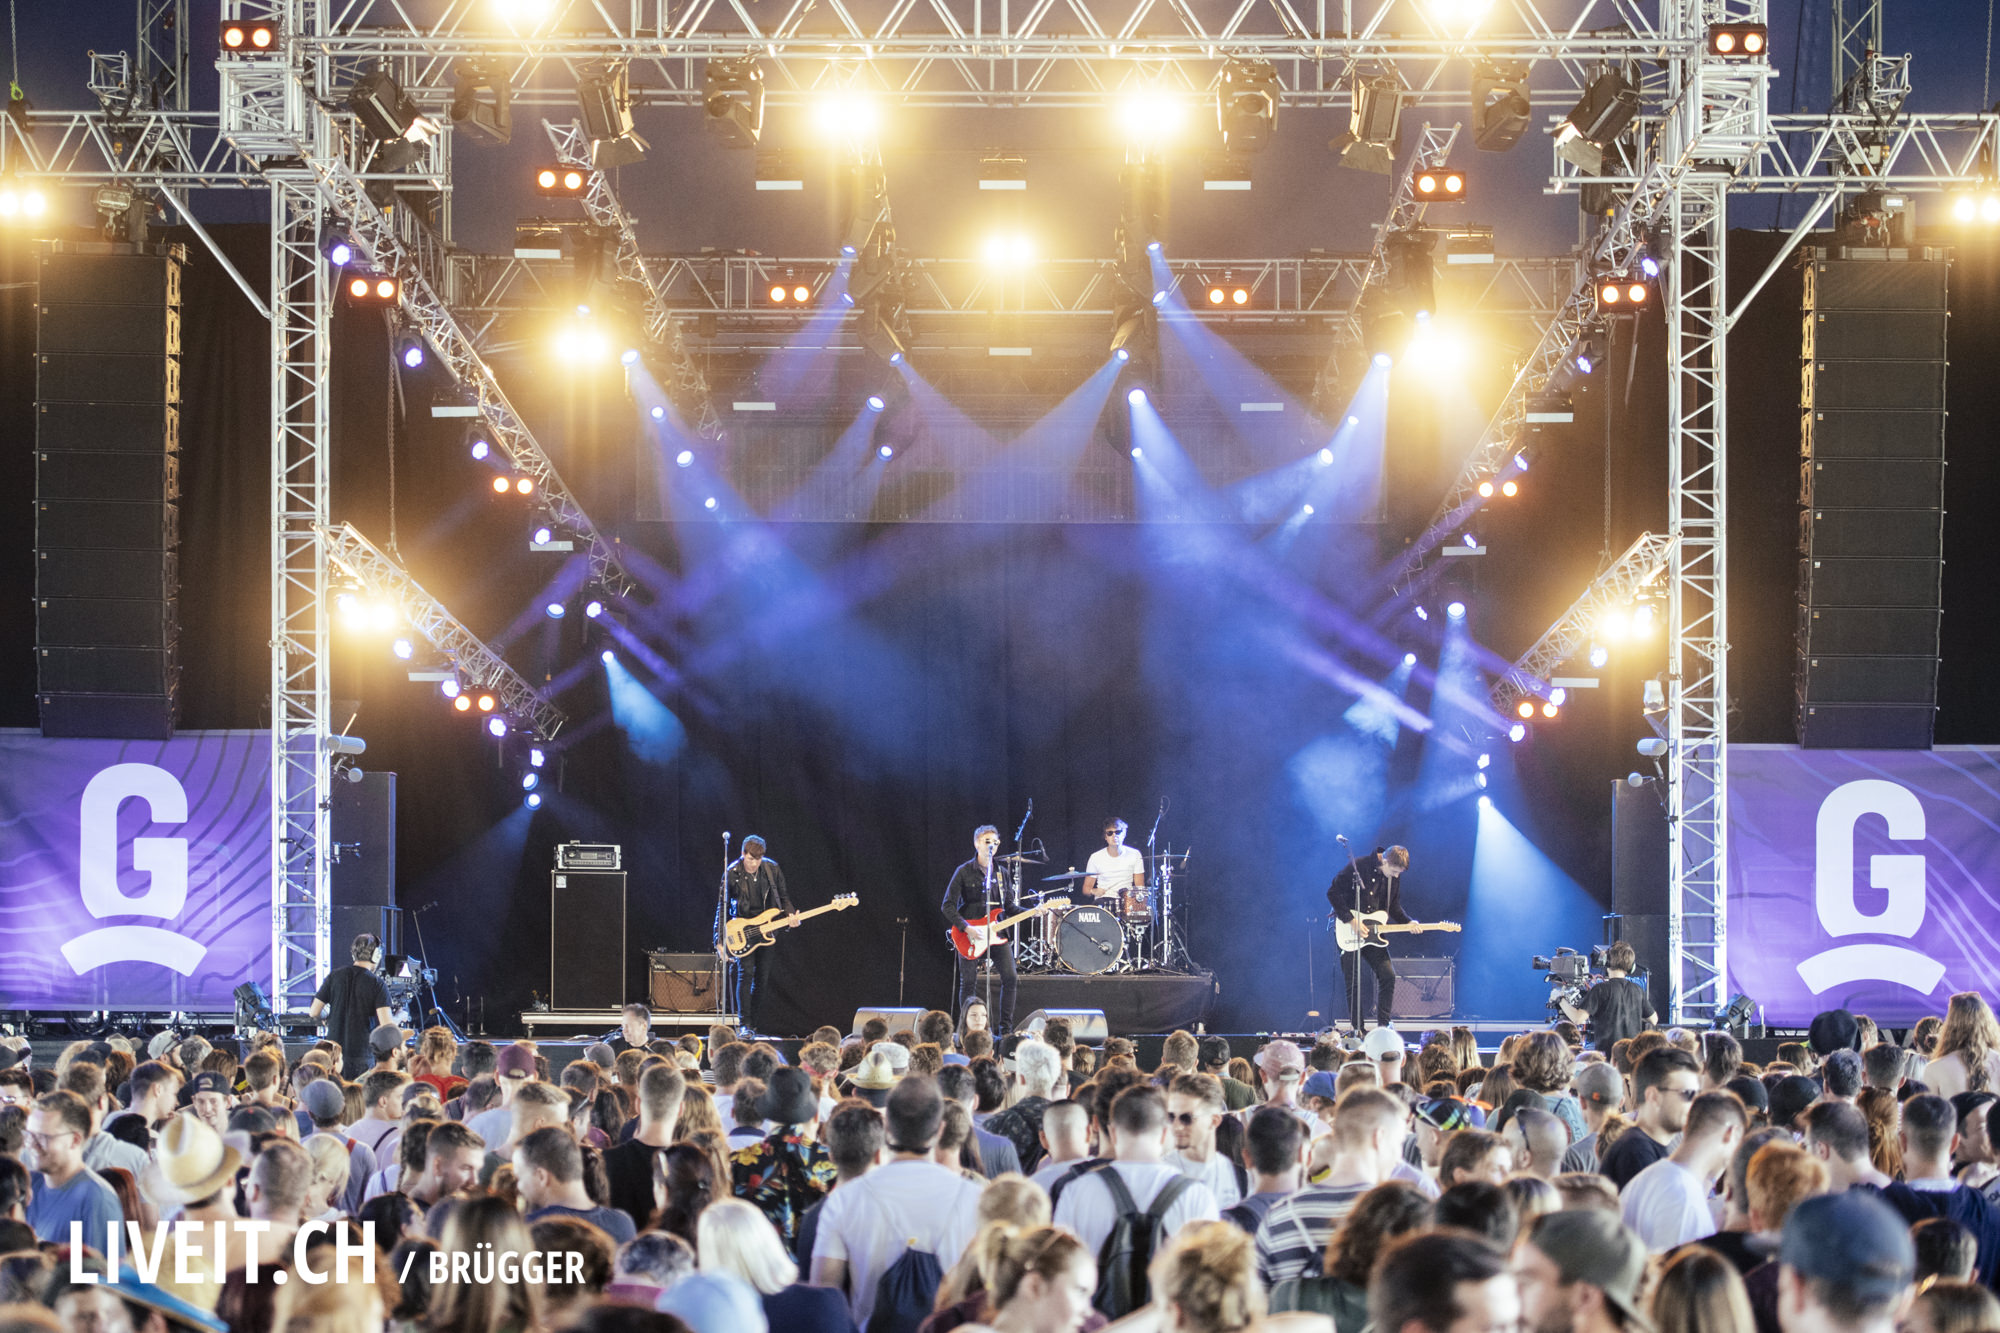 The Sherlocks am Gurtenfestival 2019